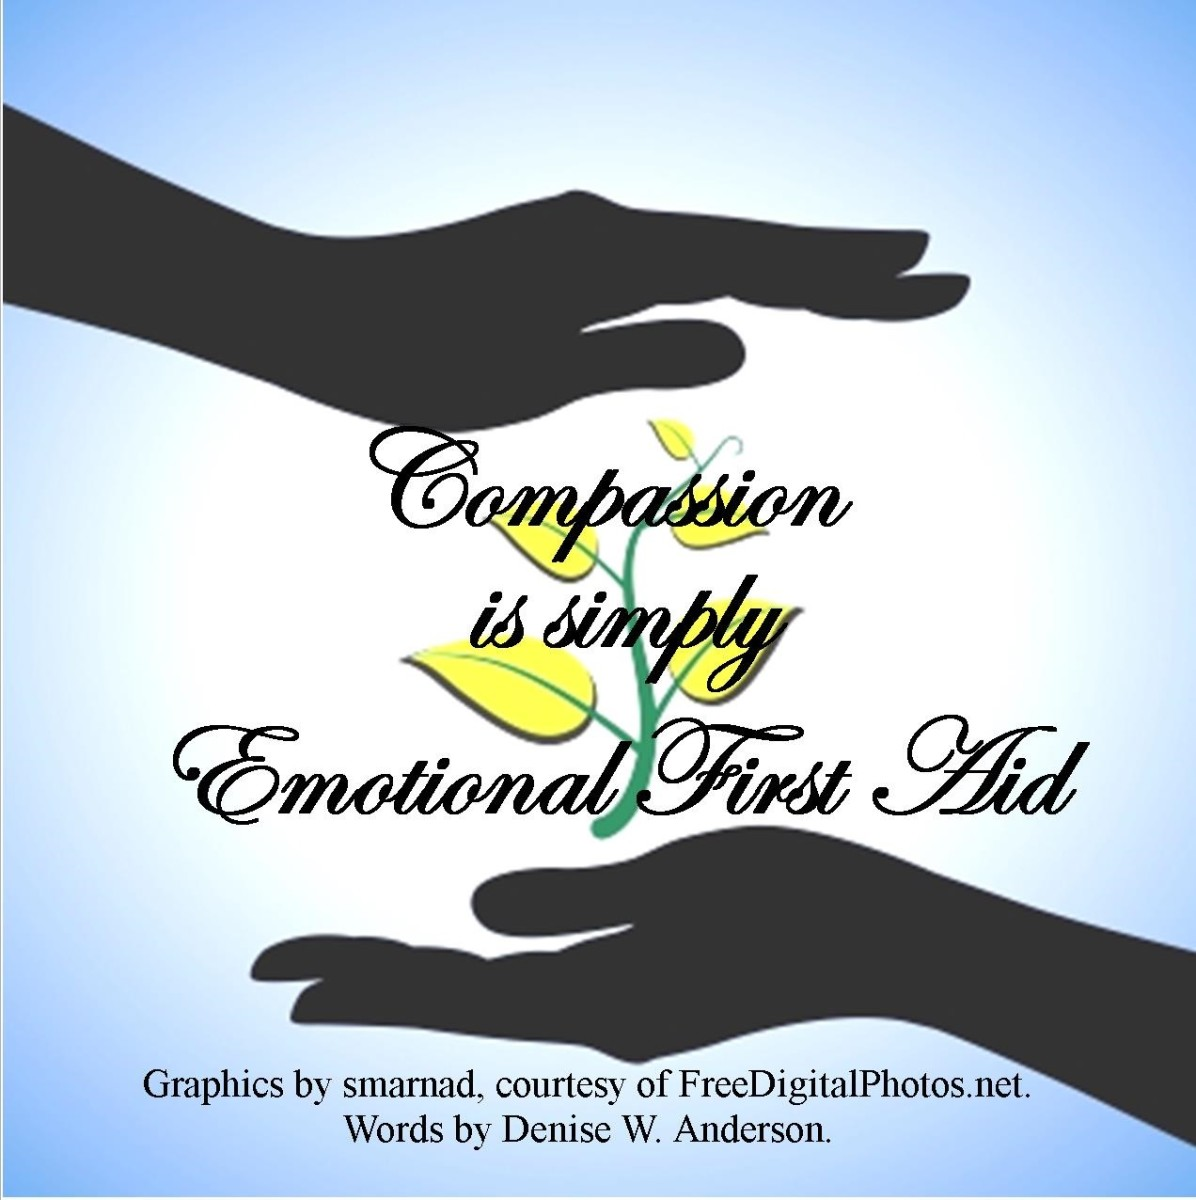 Providing Emotional First Aid - Helping Others When They Are In Distress